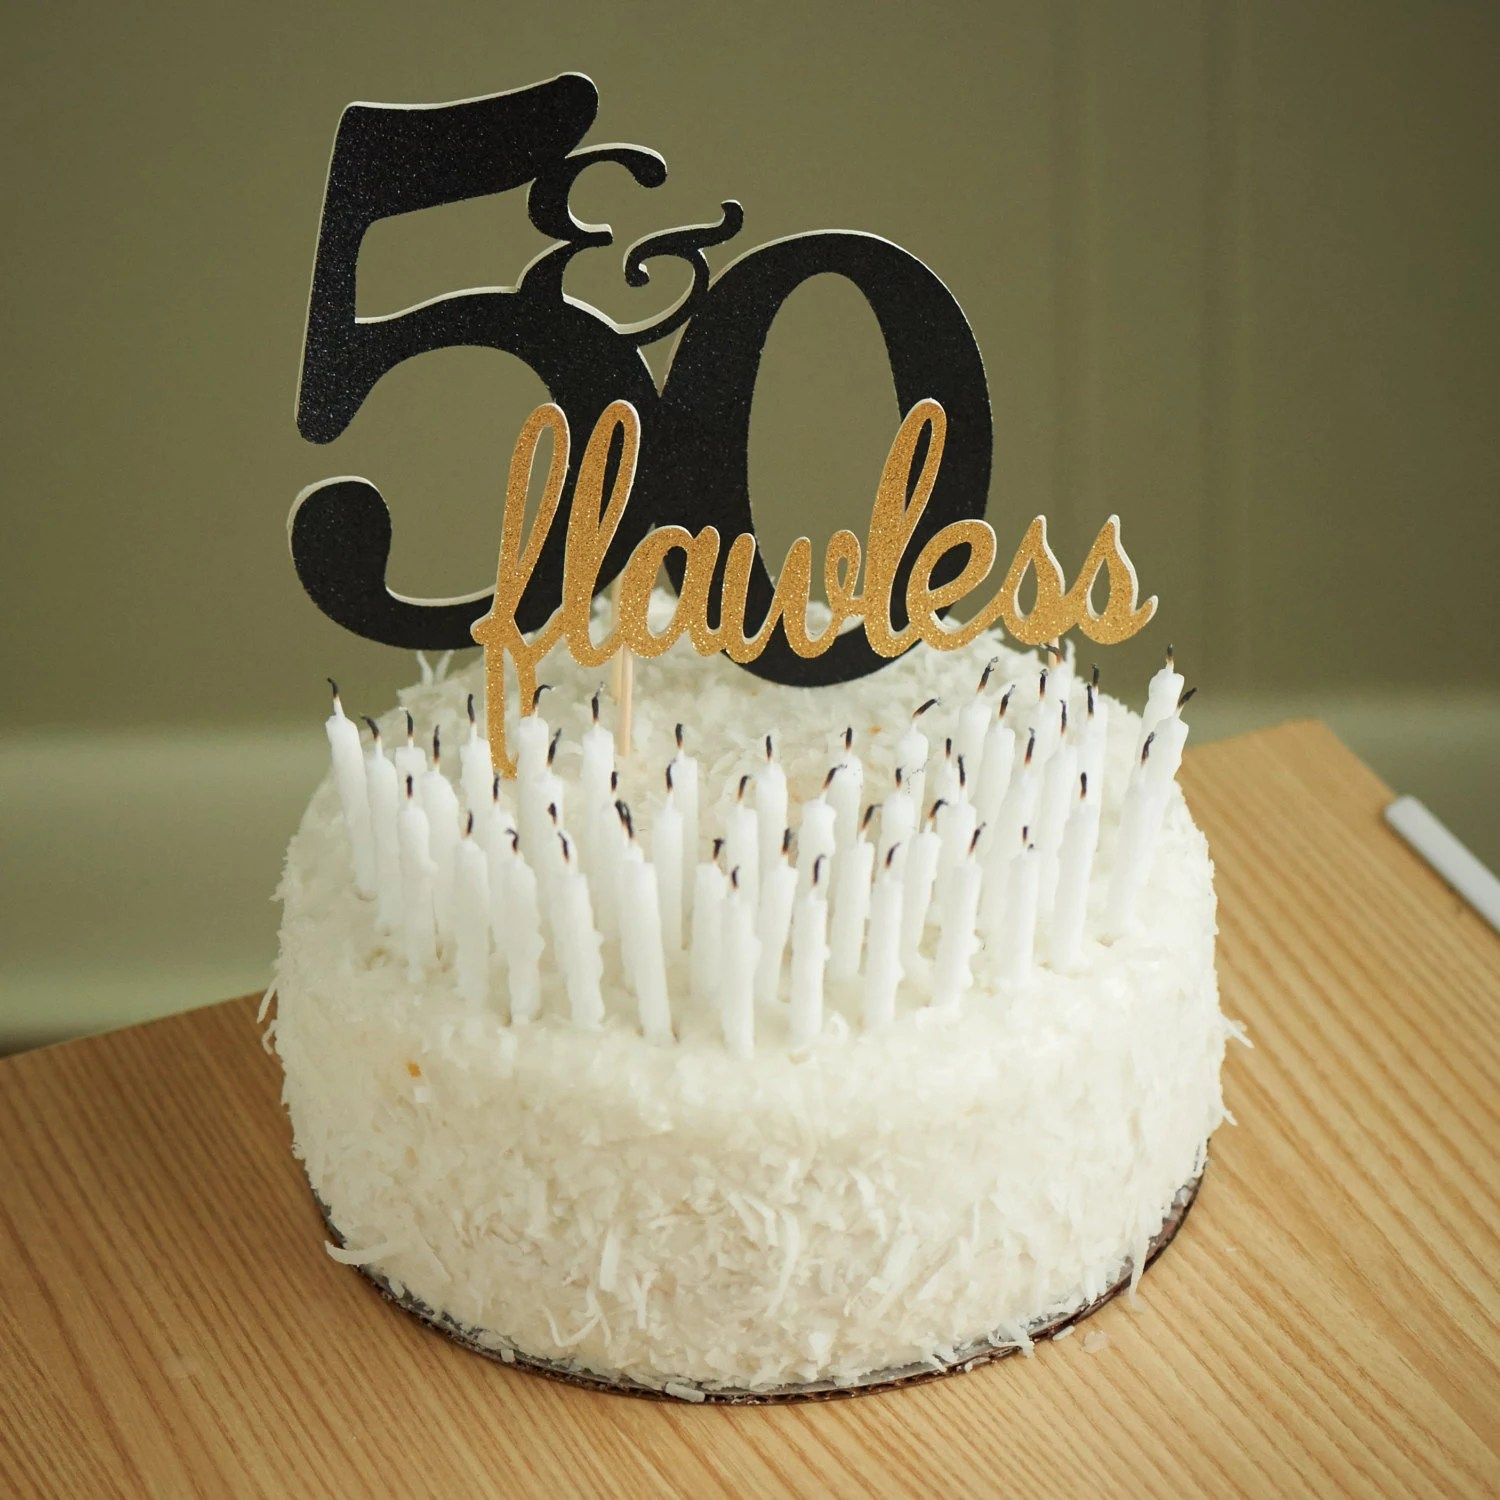 50th Birthday Cake Topper Handcrafted In 2 5 Business